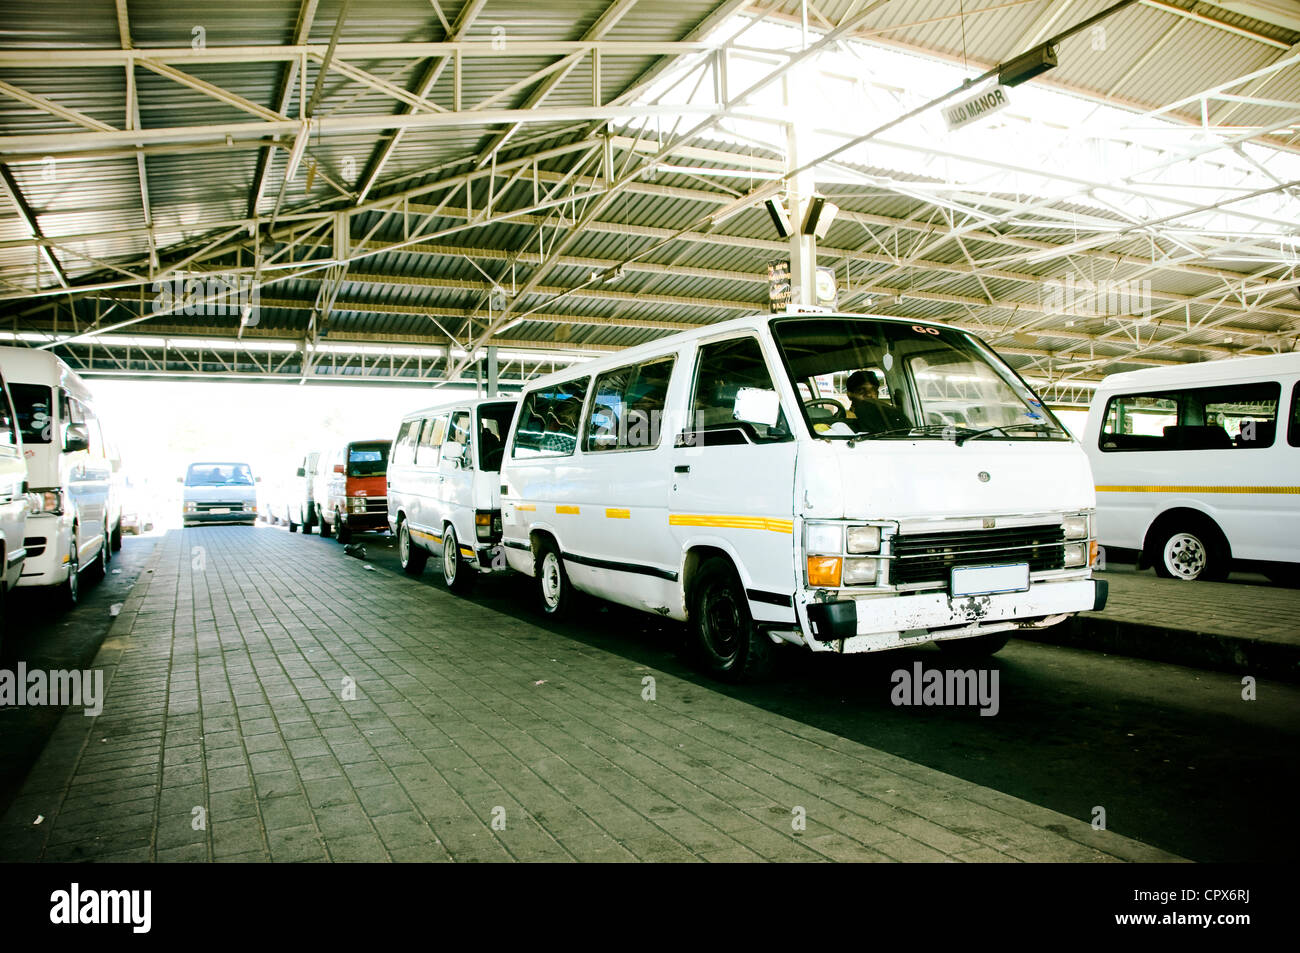 Minibus taxis parked inside a taxi rank - Stock Image